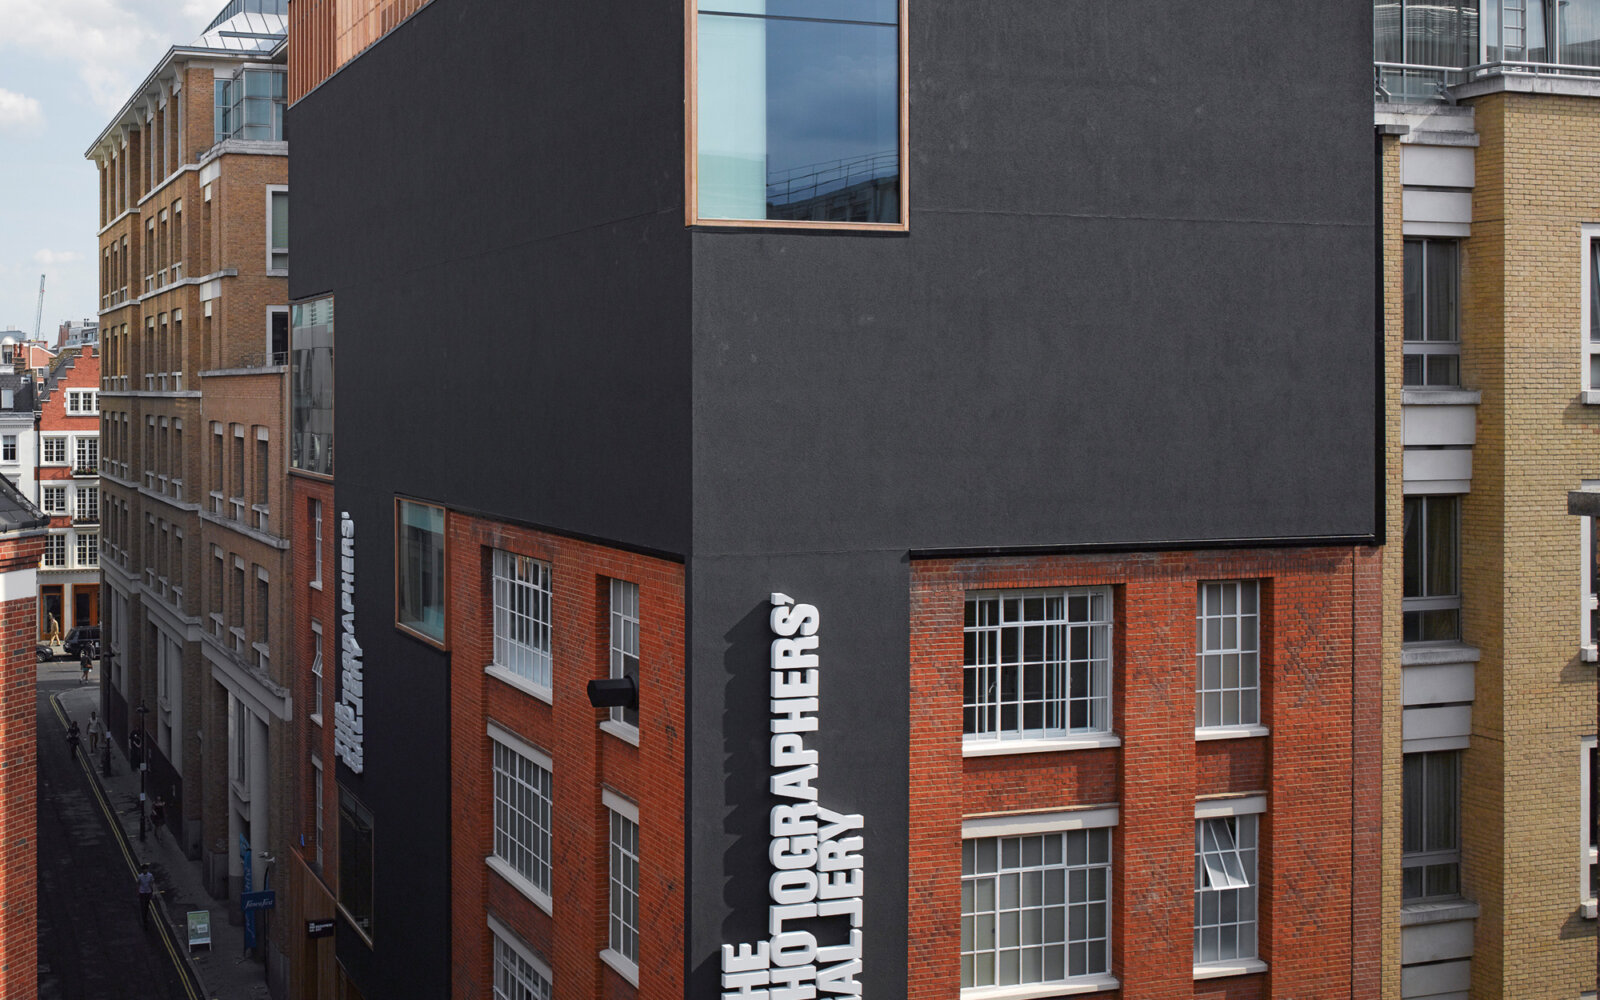 The Photographers' Gallery building